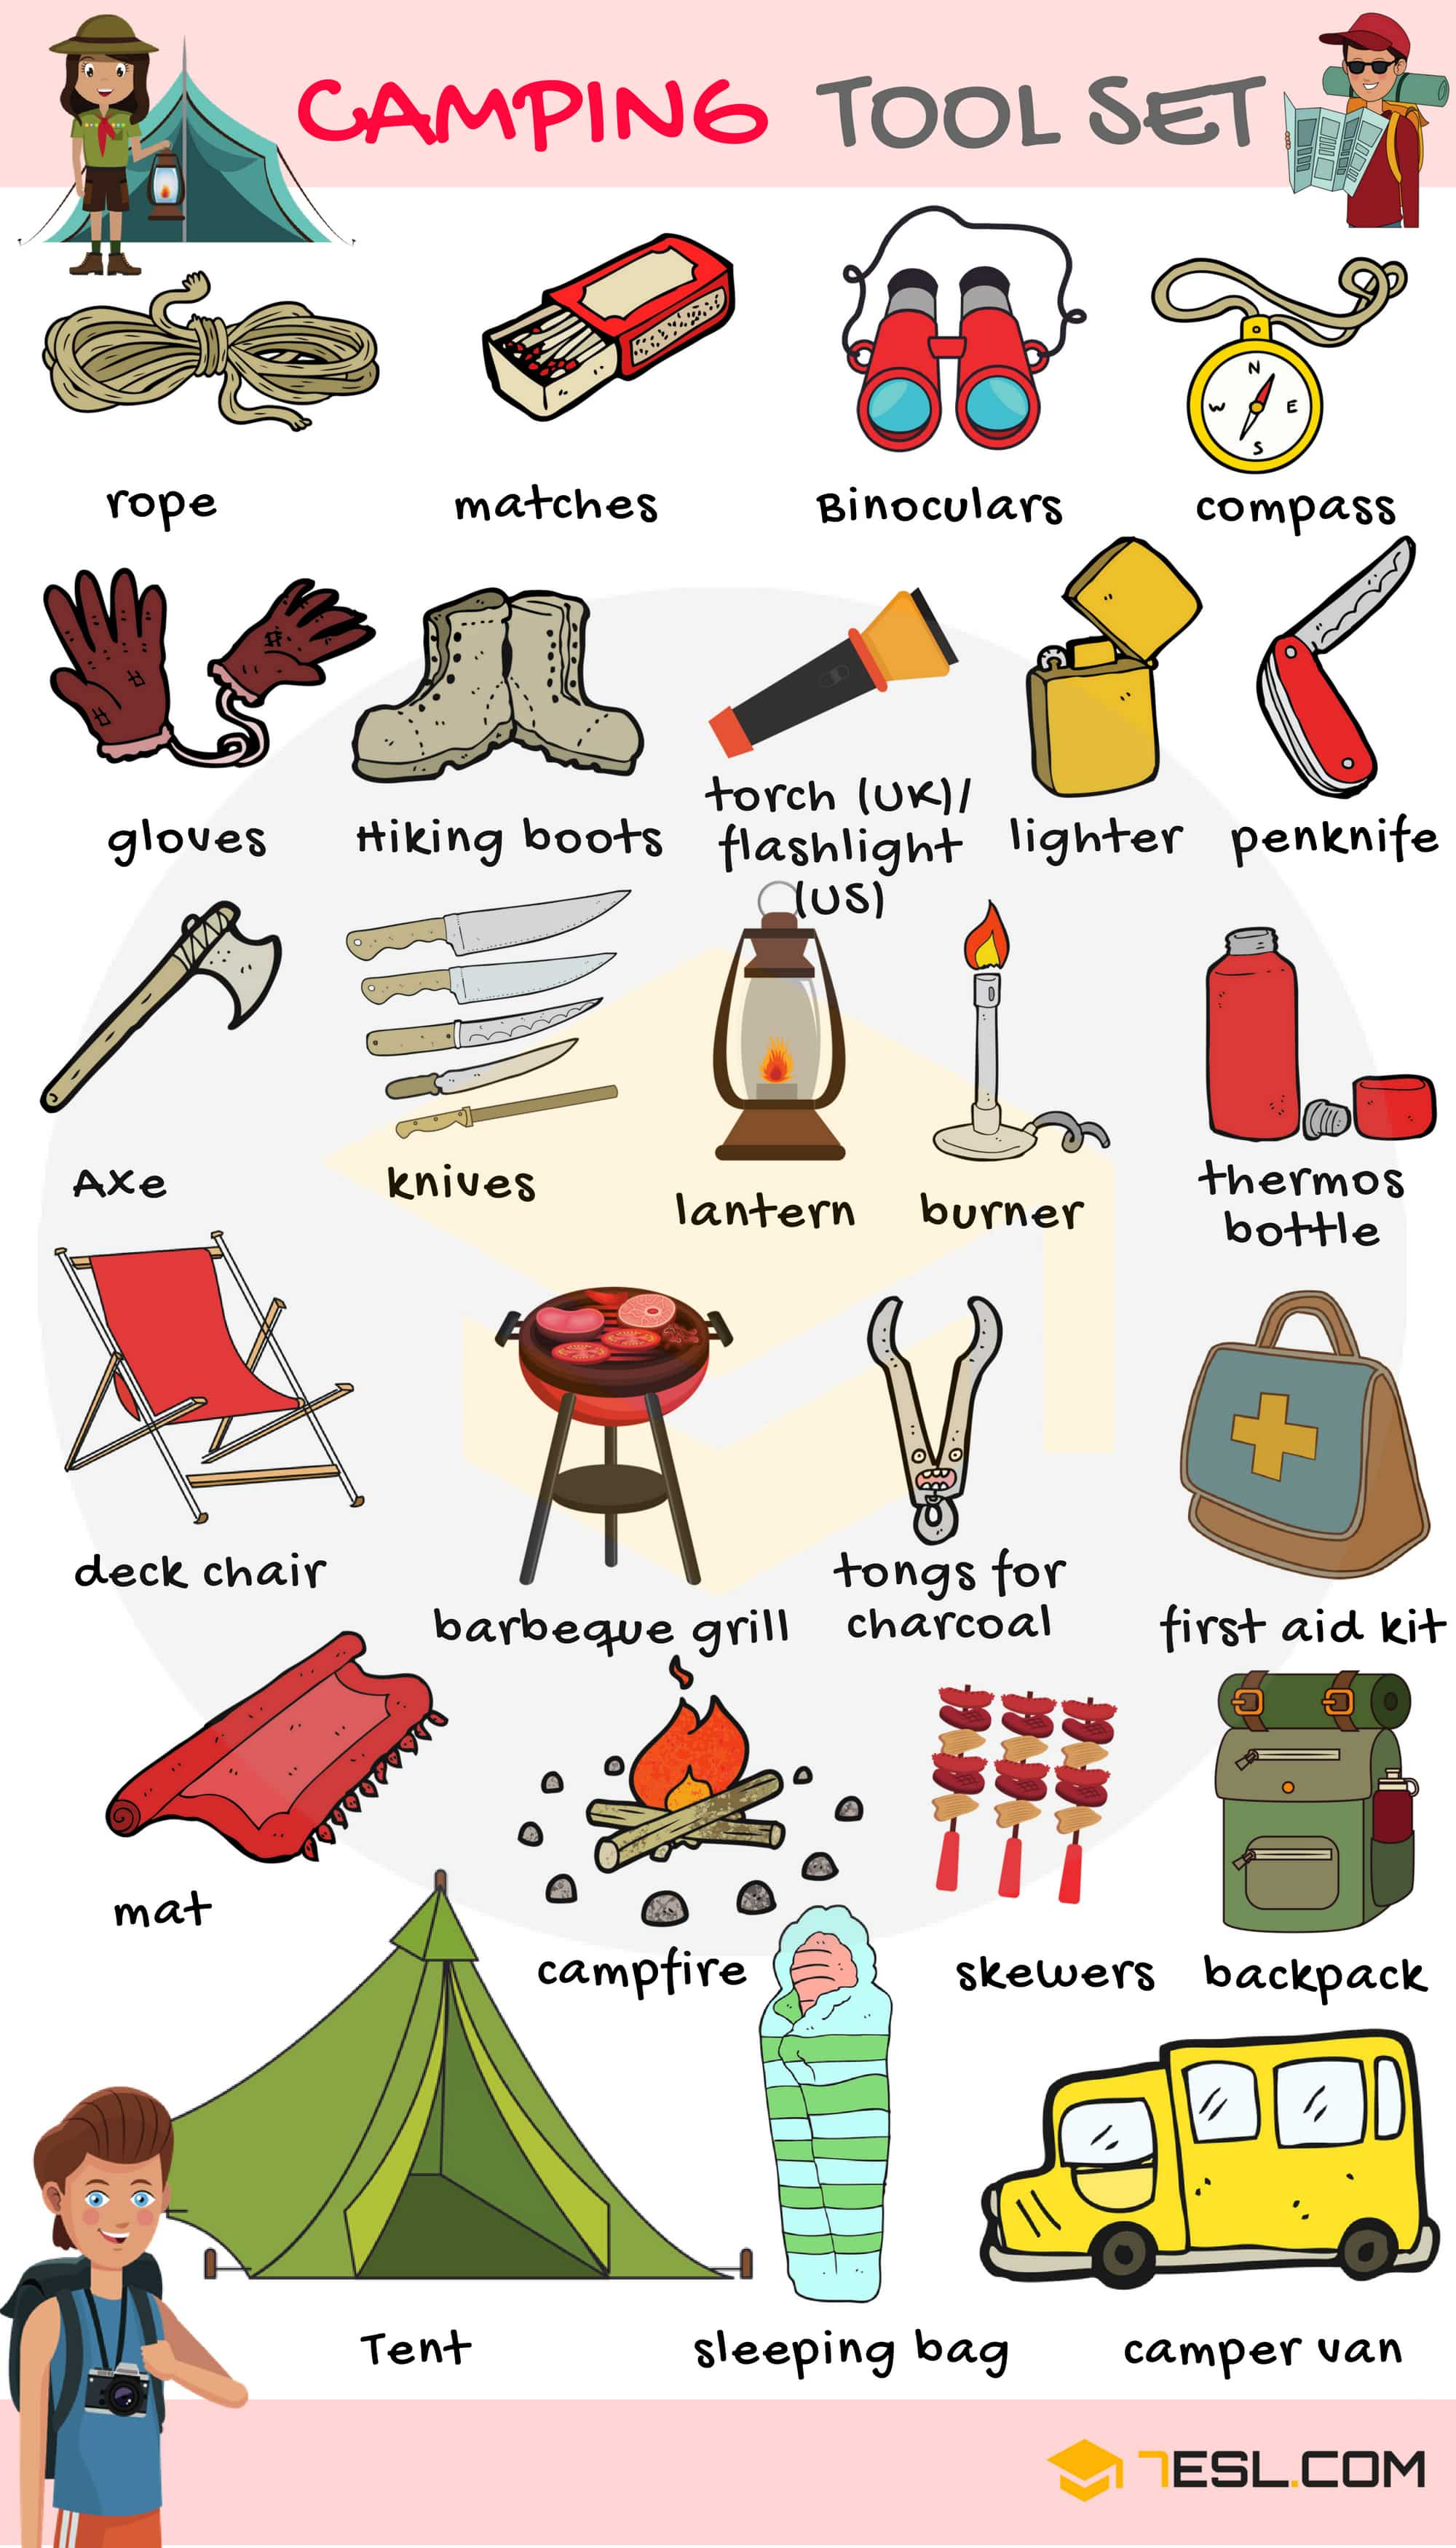 Camping Checklist: Useful Camping List with Pictures